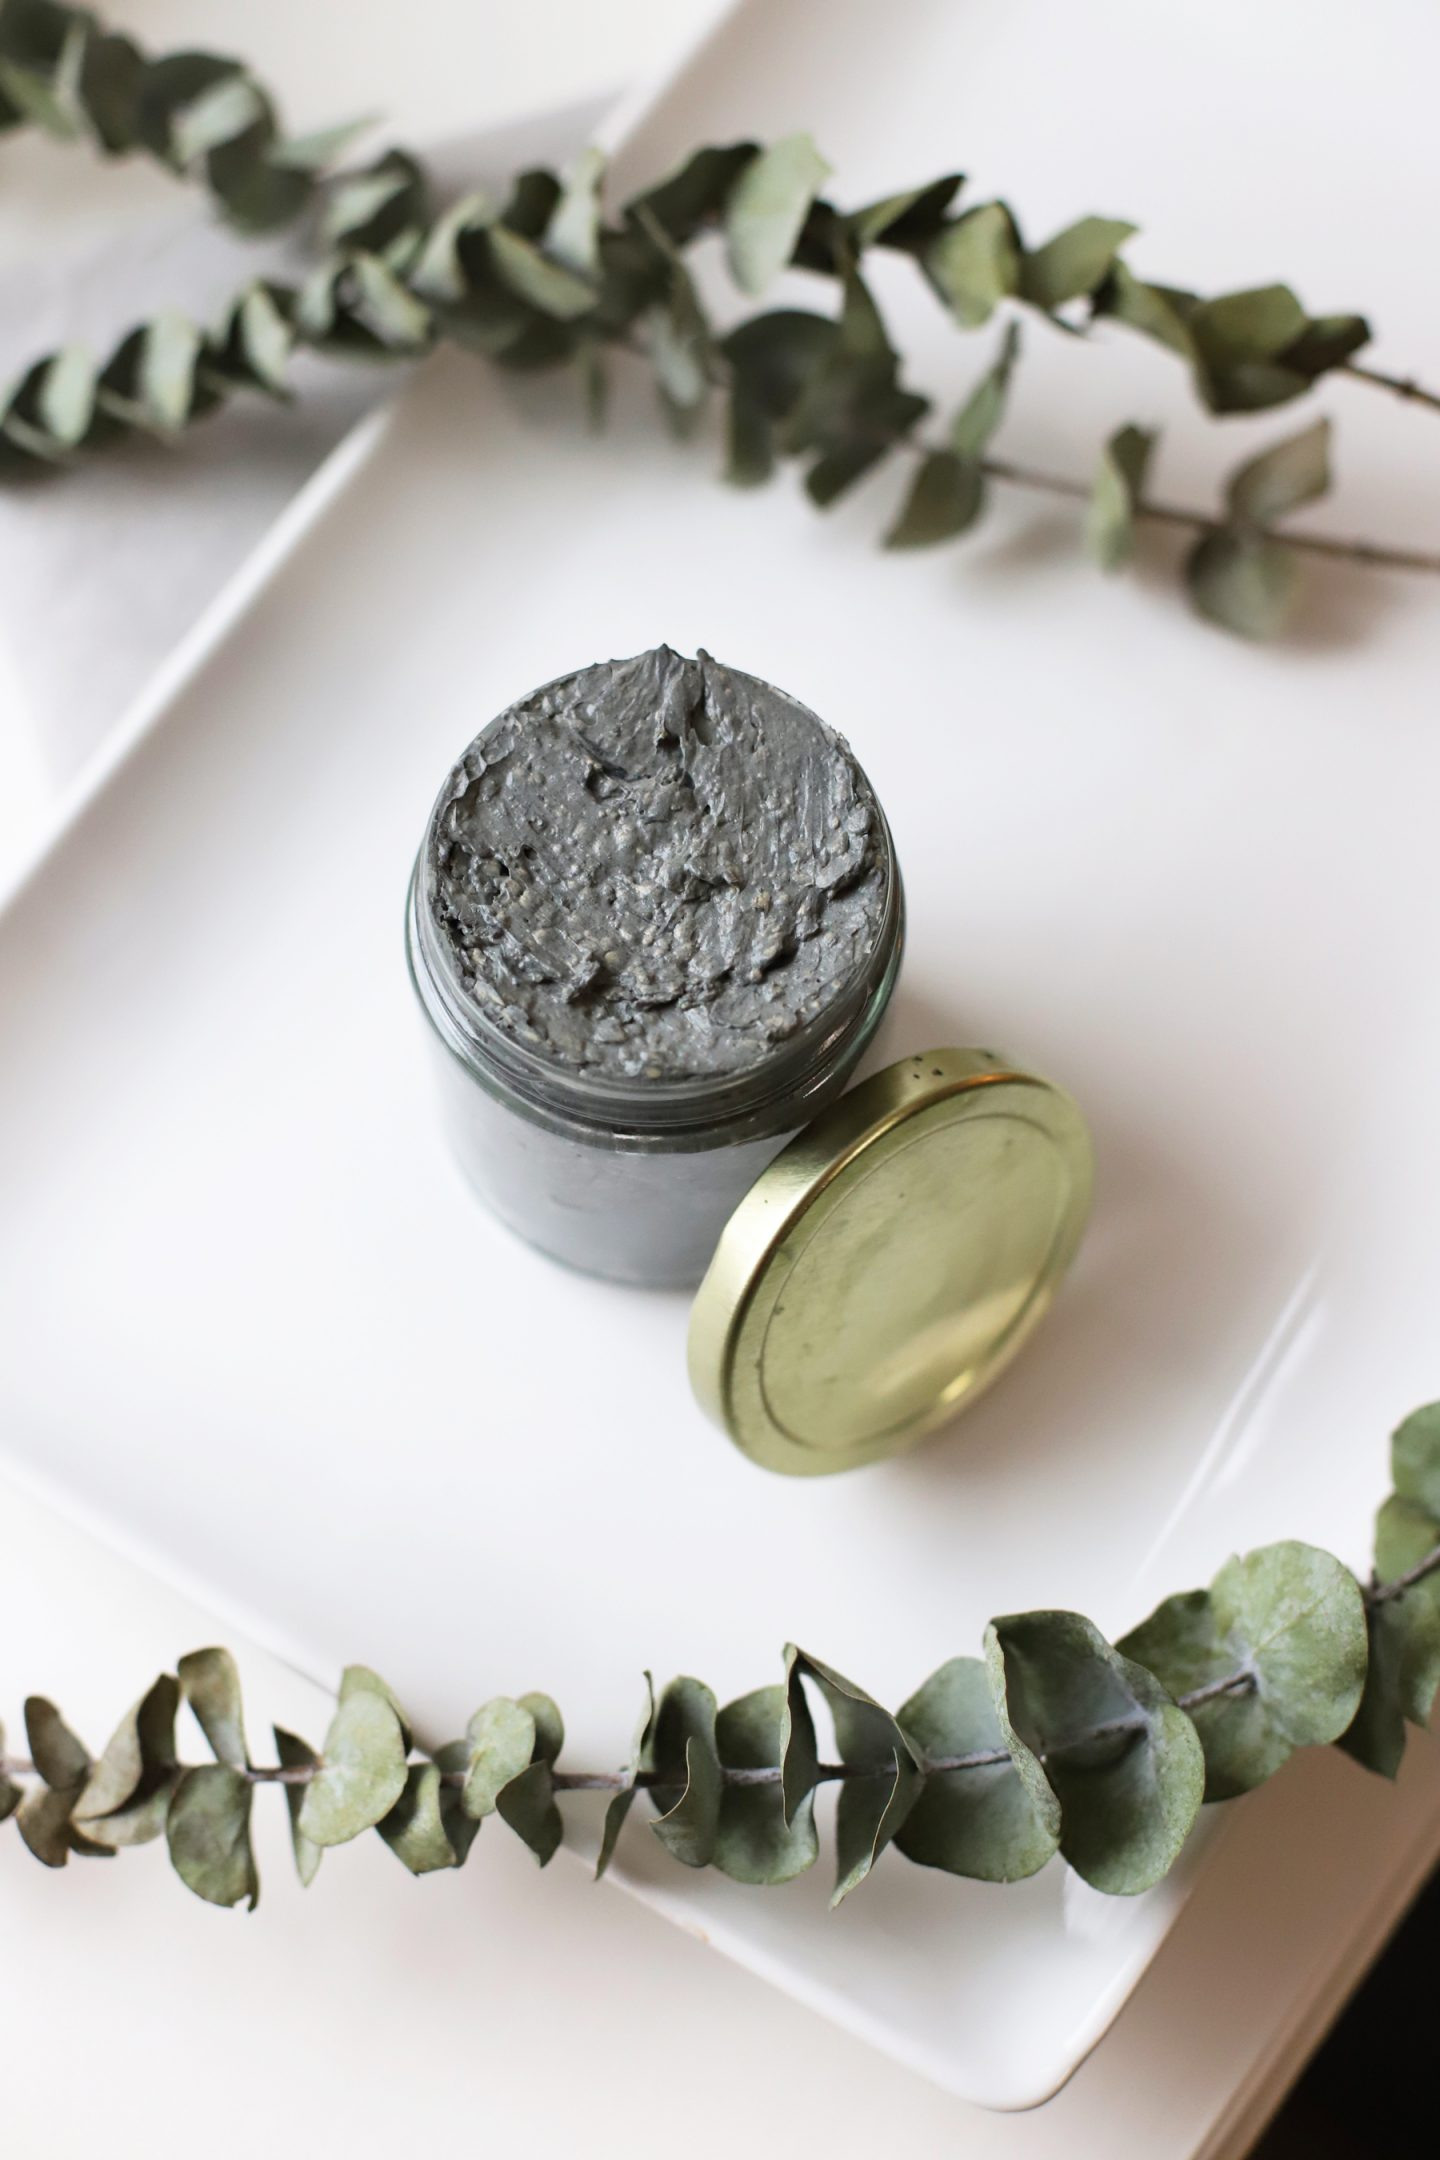 I'm showing you how to make your very own DIY glamglow mask that's non-toxic, affordable, and perfect for all skin types.